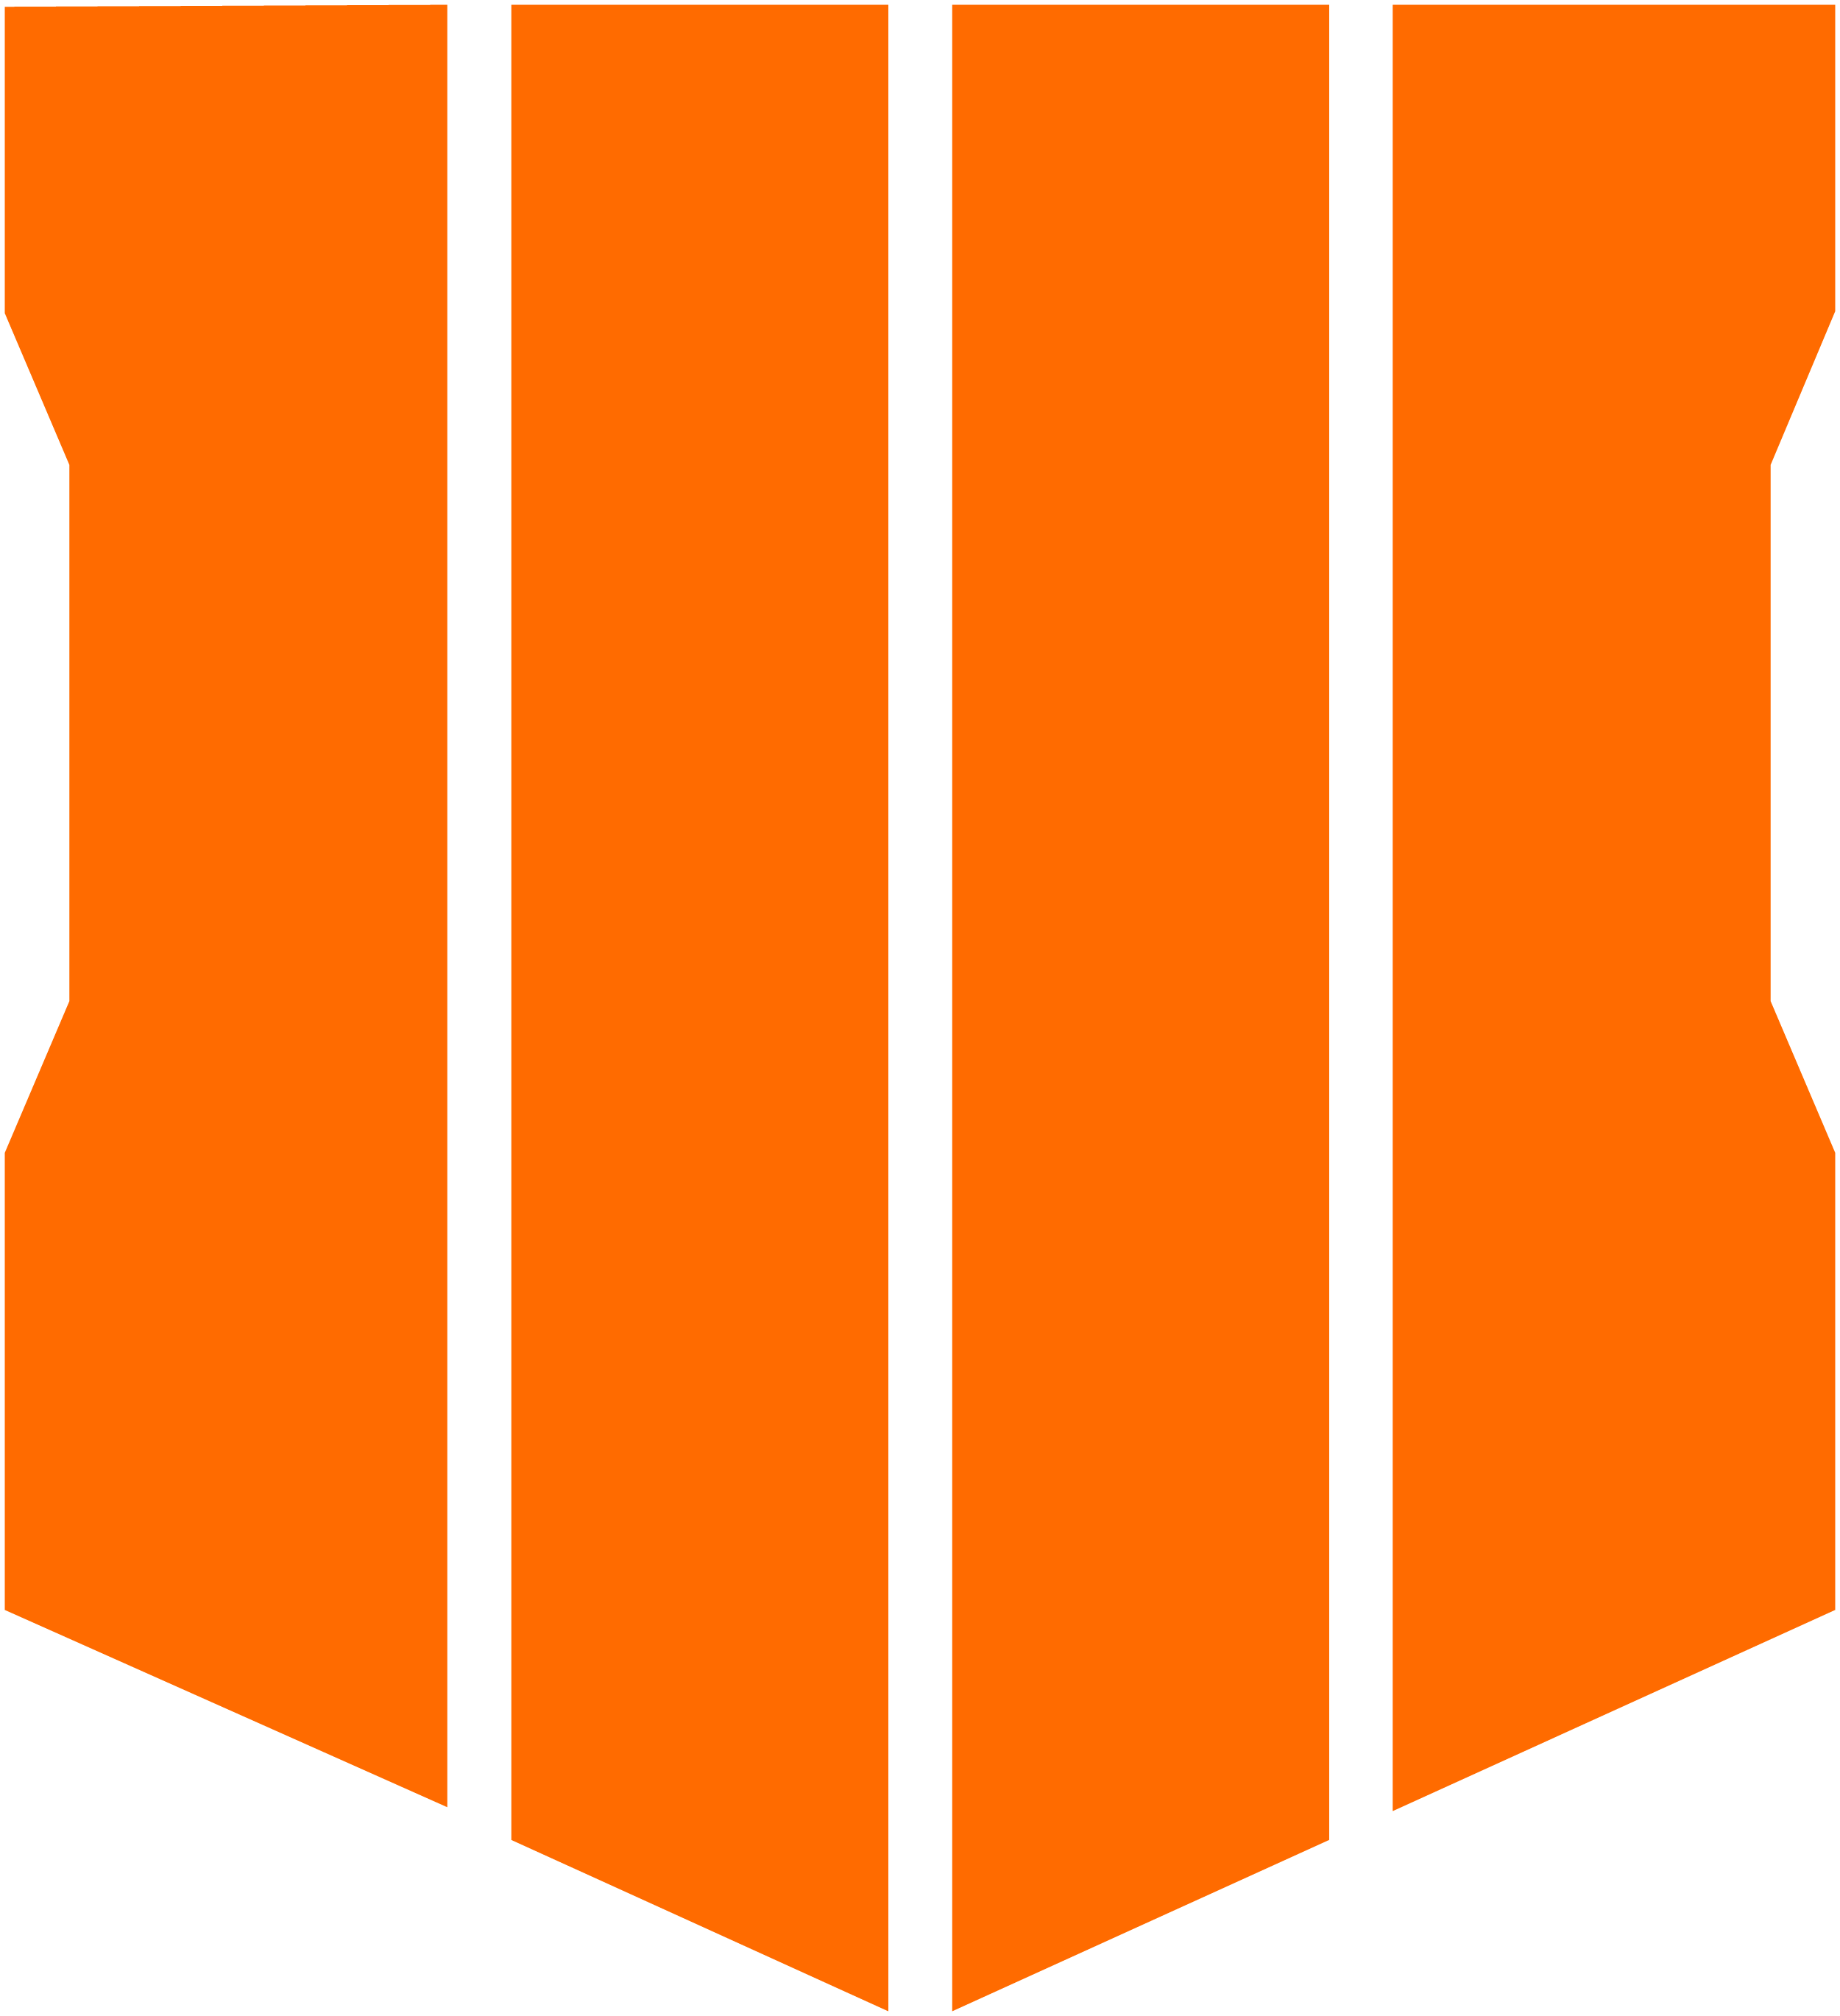 Download Call of Duty: Black Ops 4 Logo PNG Image for Free.